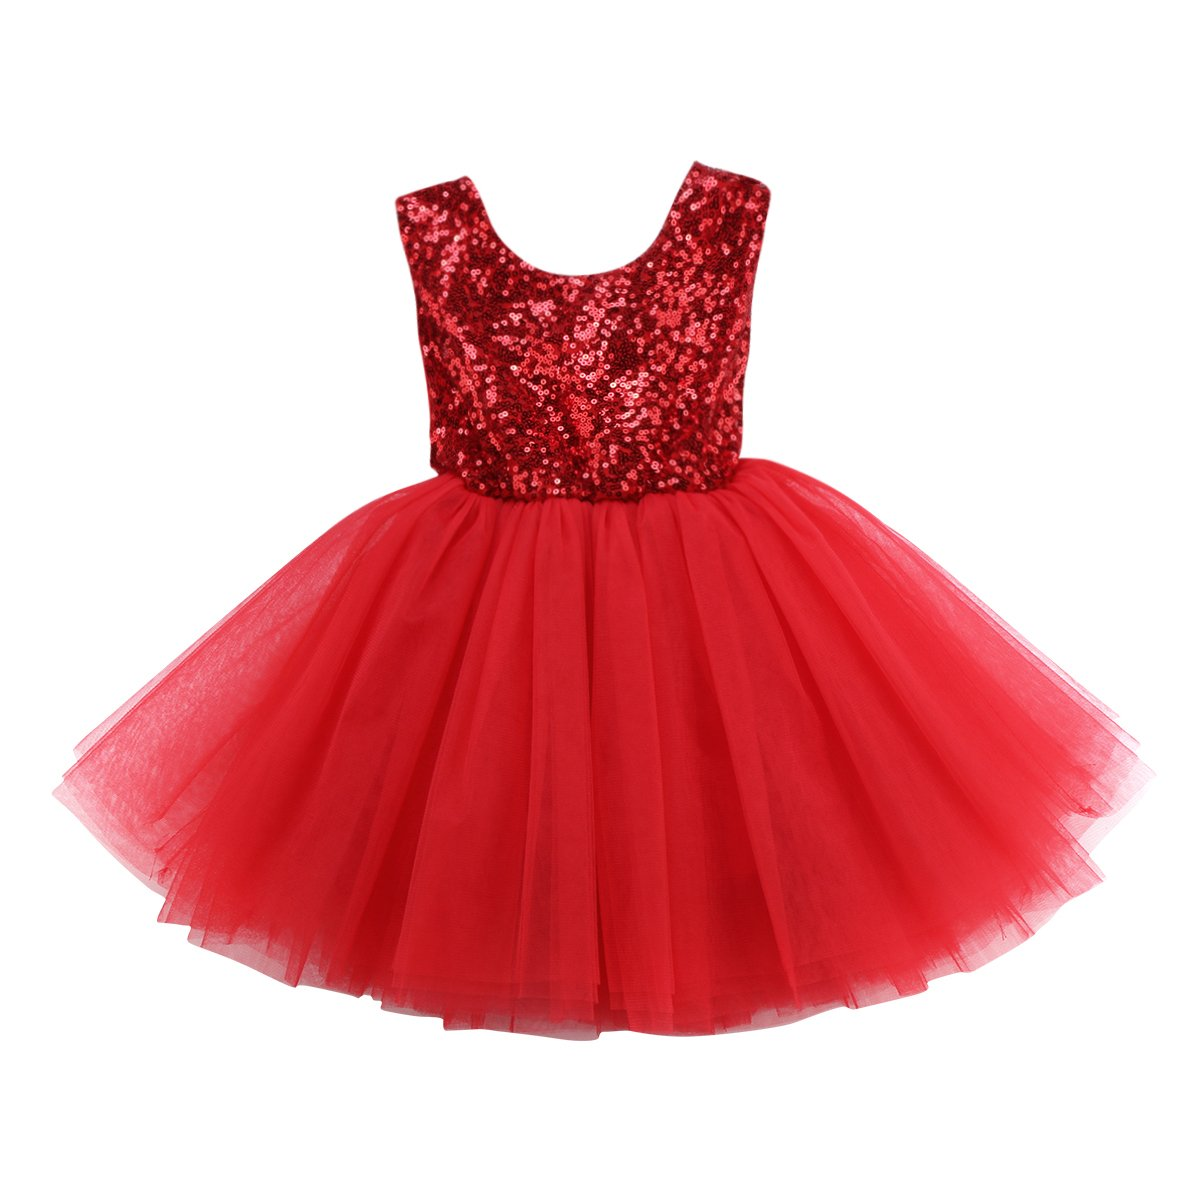 Baby Girls Sleeveless Flower Wedding Pageant Princess Bowknot Party Dress Infant Lace Tutu Dresses 0-5Years